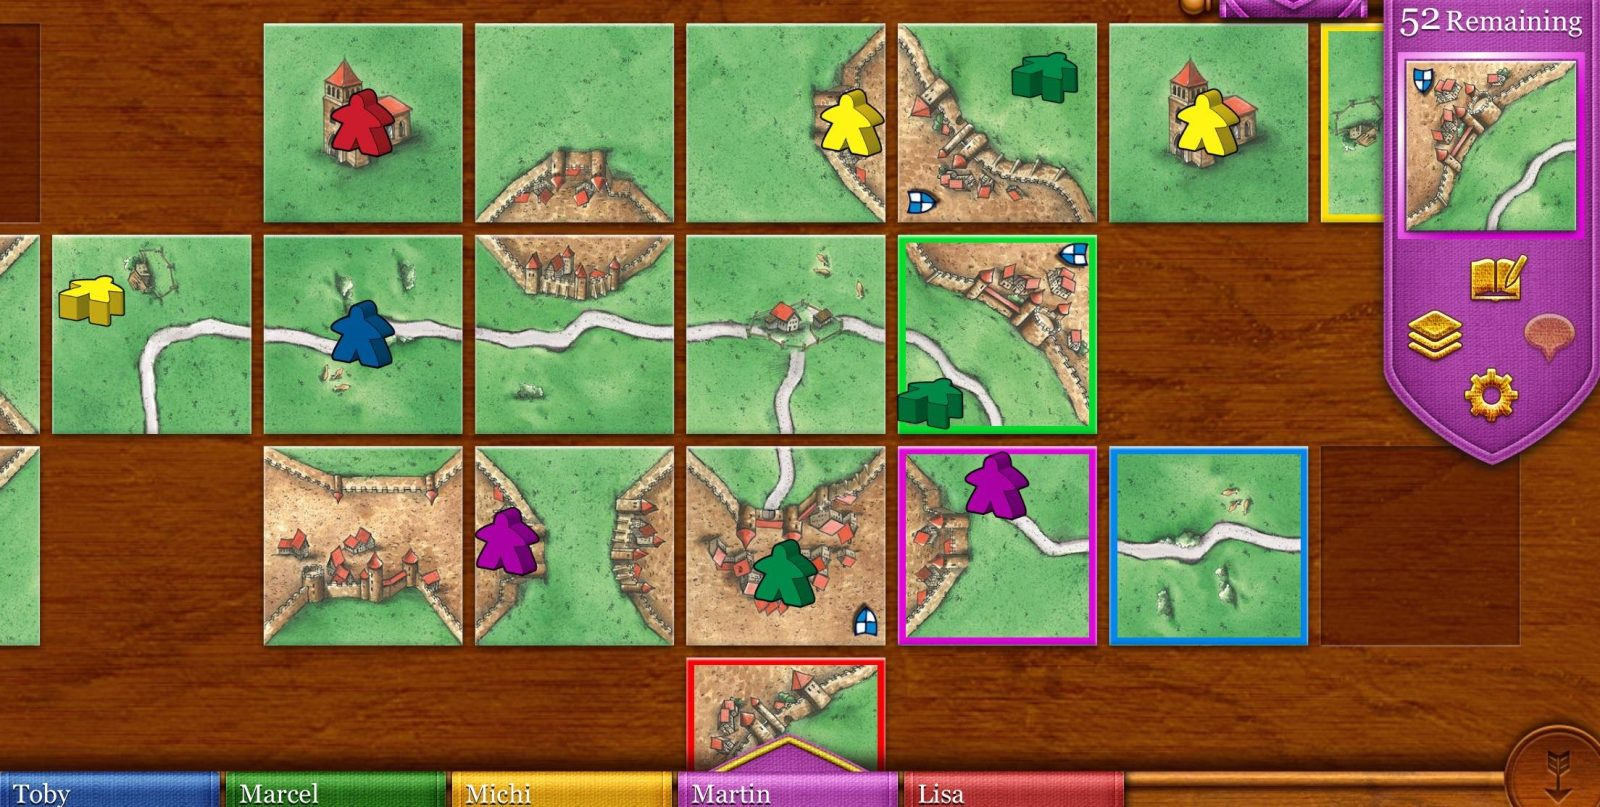 Classic board game Carcassonne hits lowest price in years on iOS: $5 (Reg. $10)